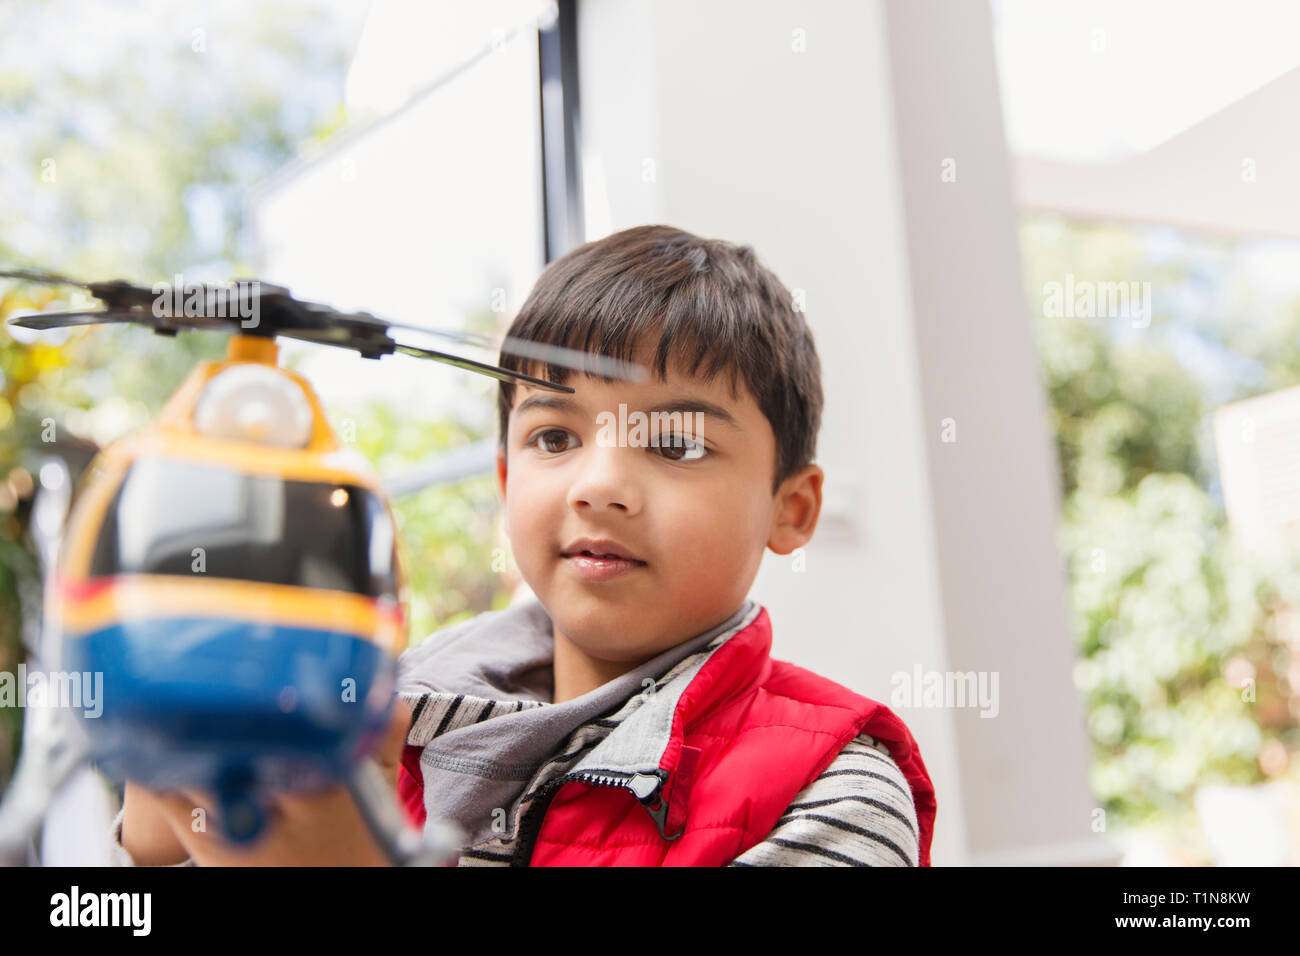 Boy playing with toy helicopter Stock Photo